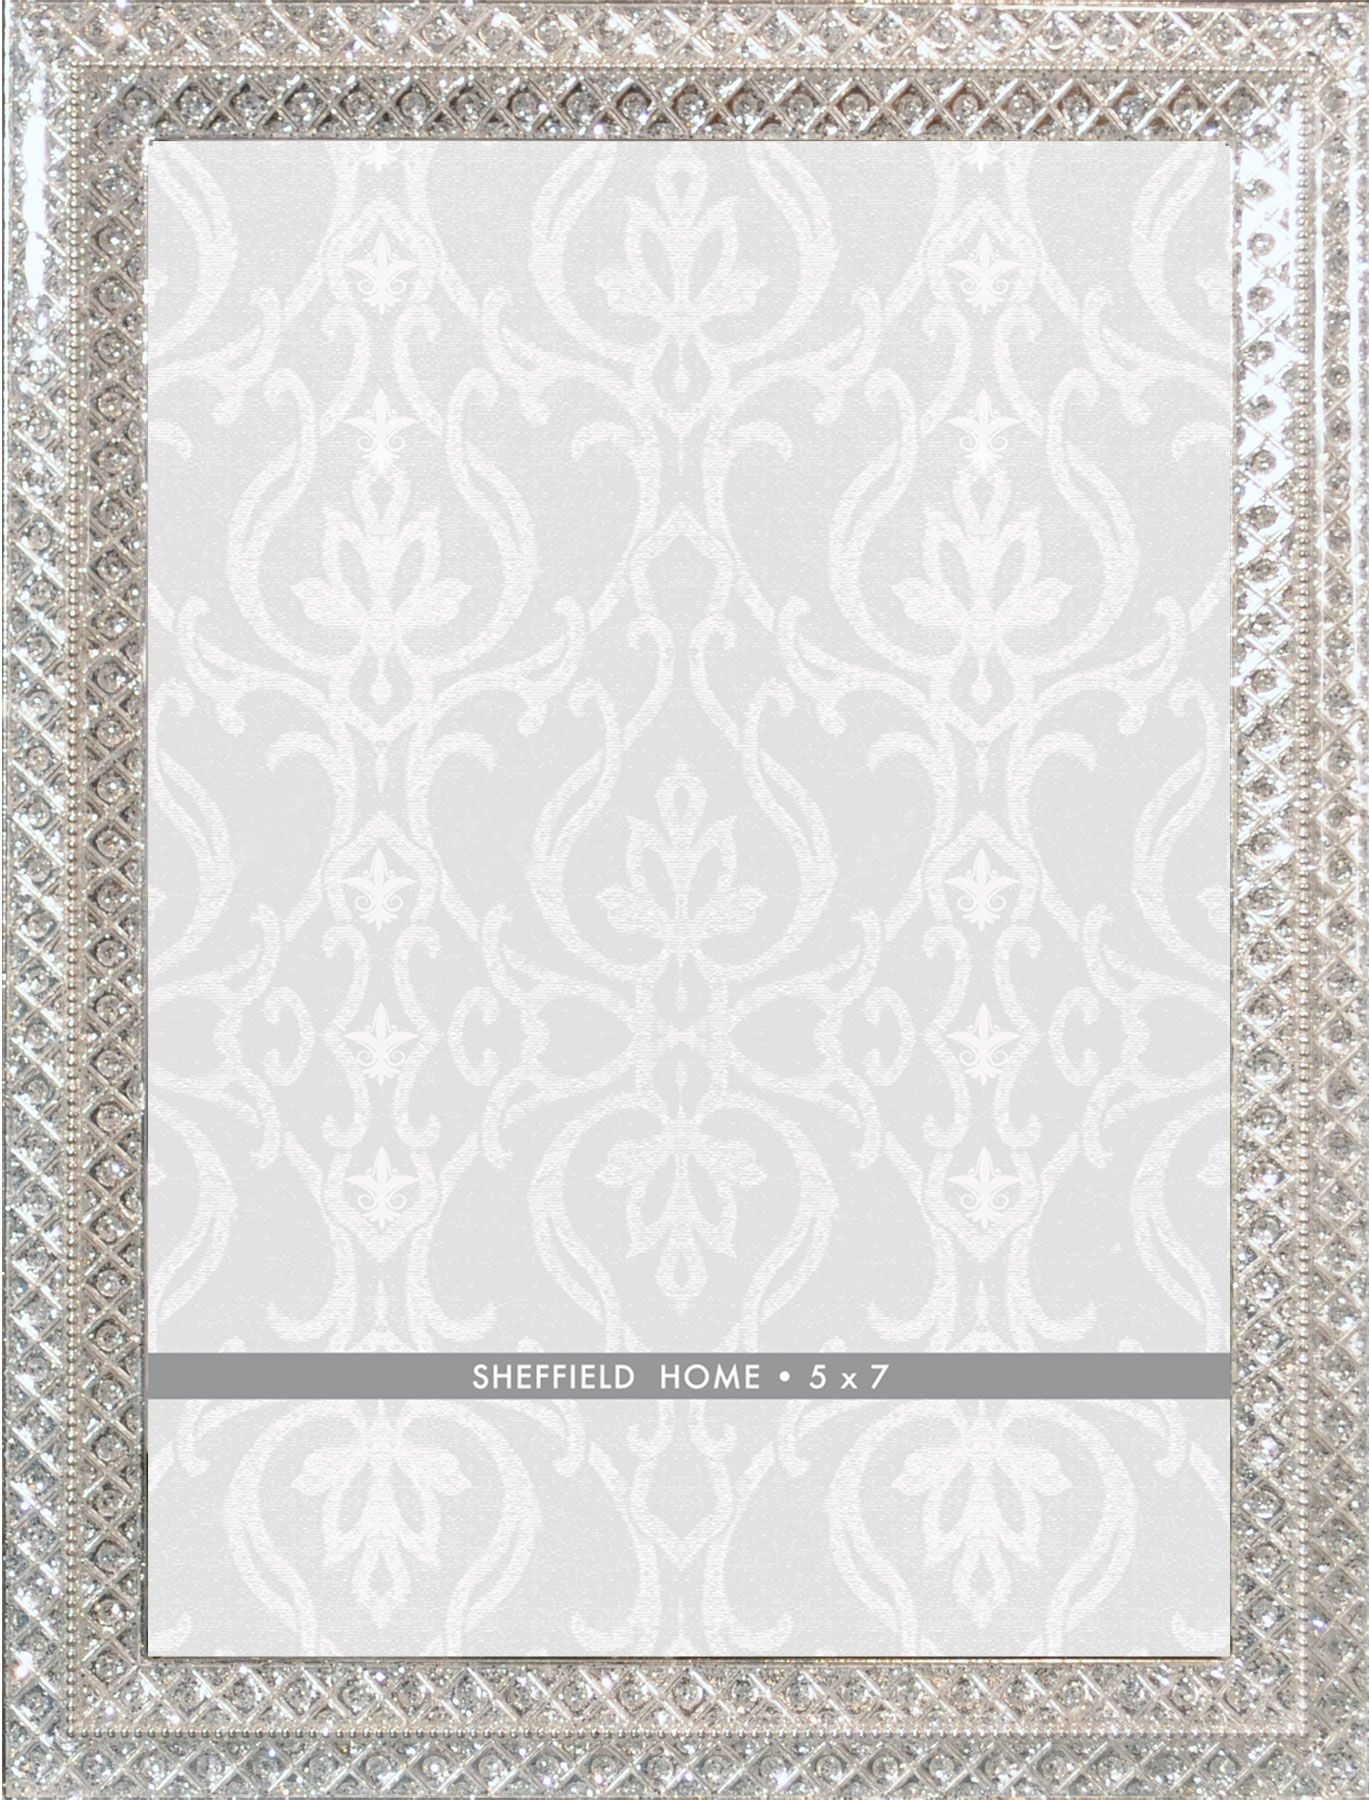 Tabletop Frame 5X7 - Silver With Jewel Chips In Border | Jewel and ...